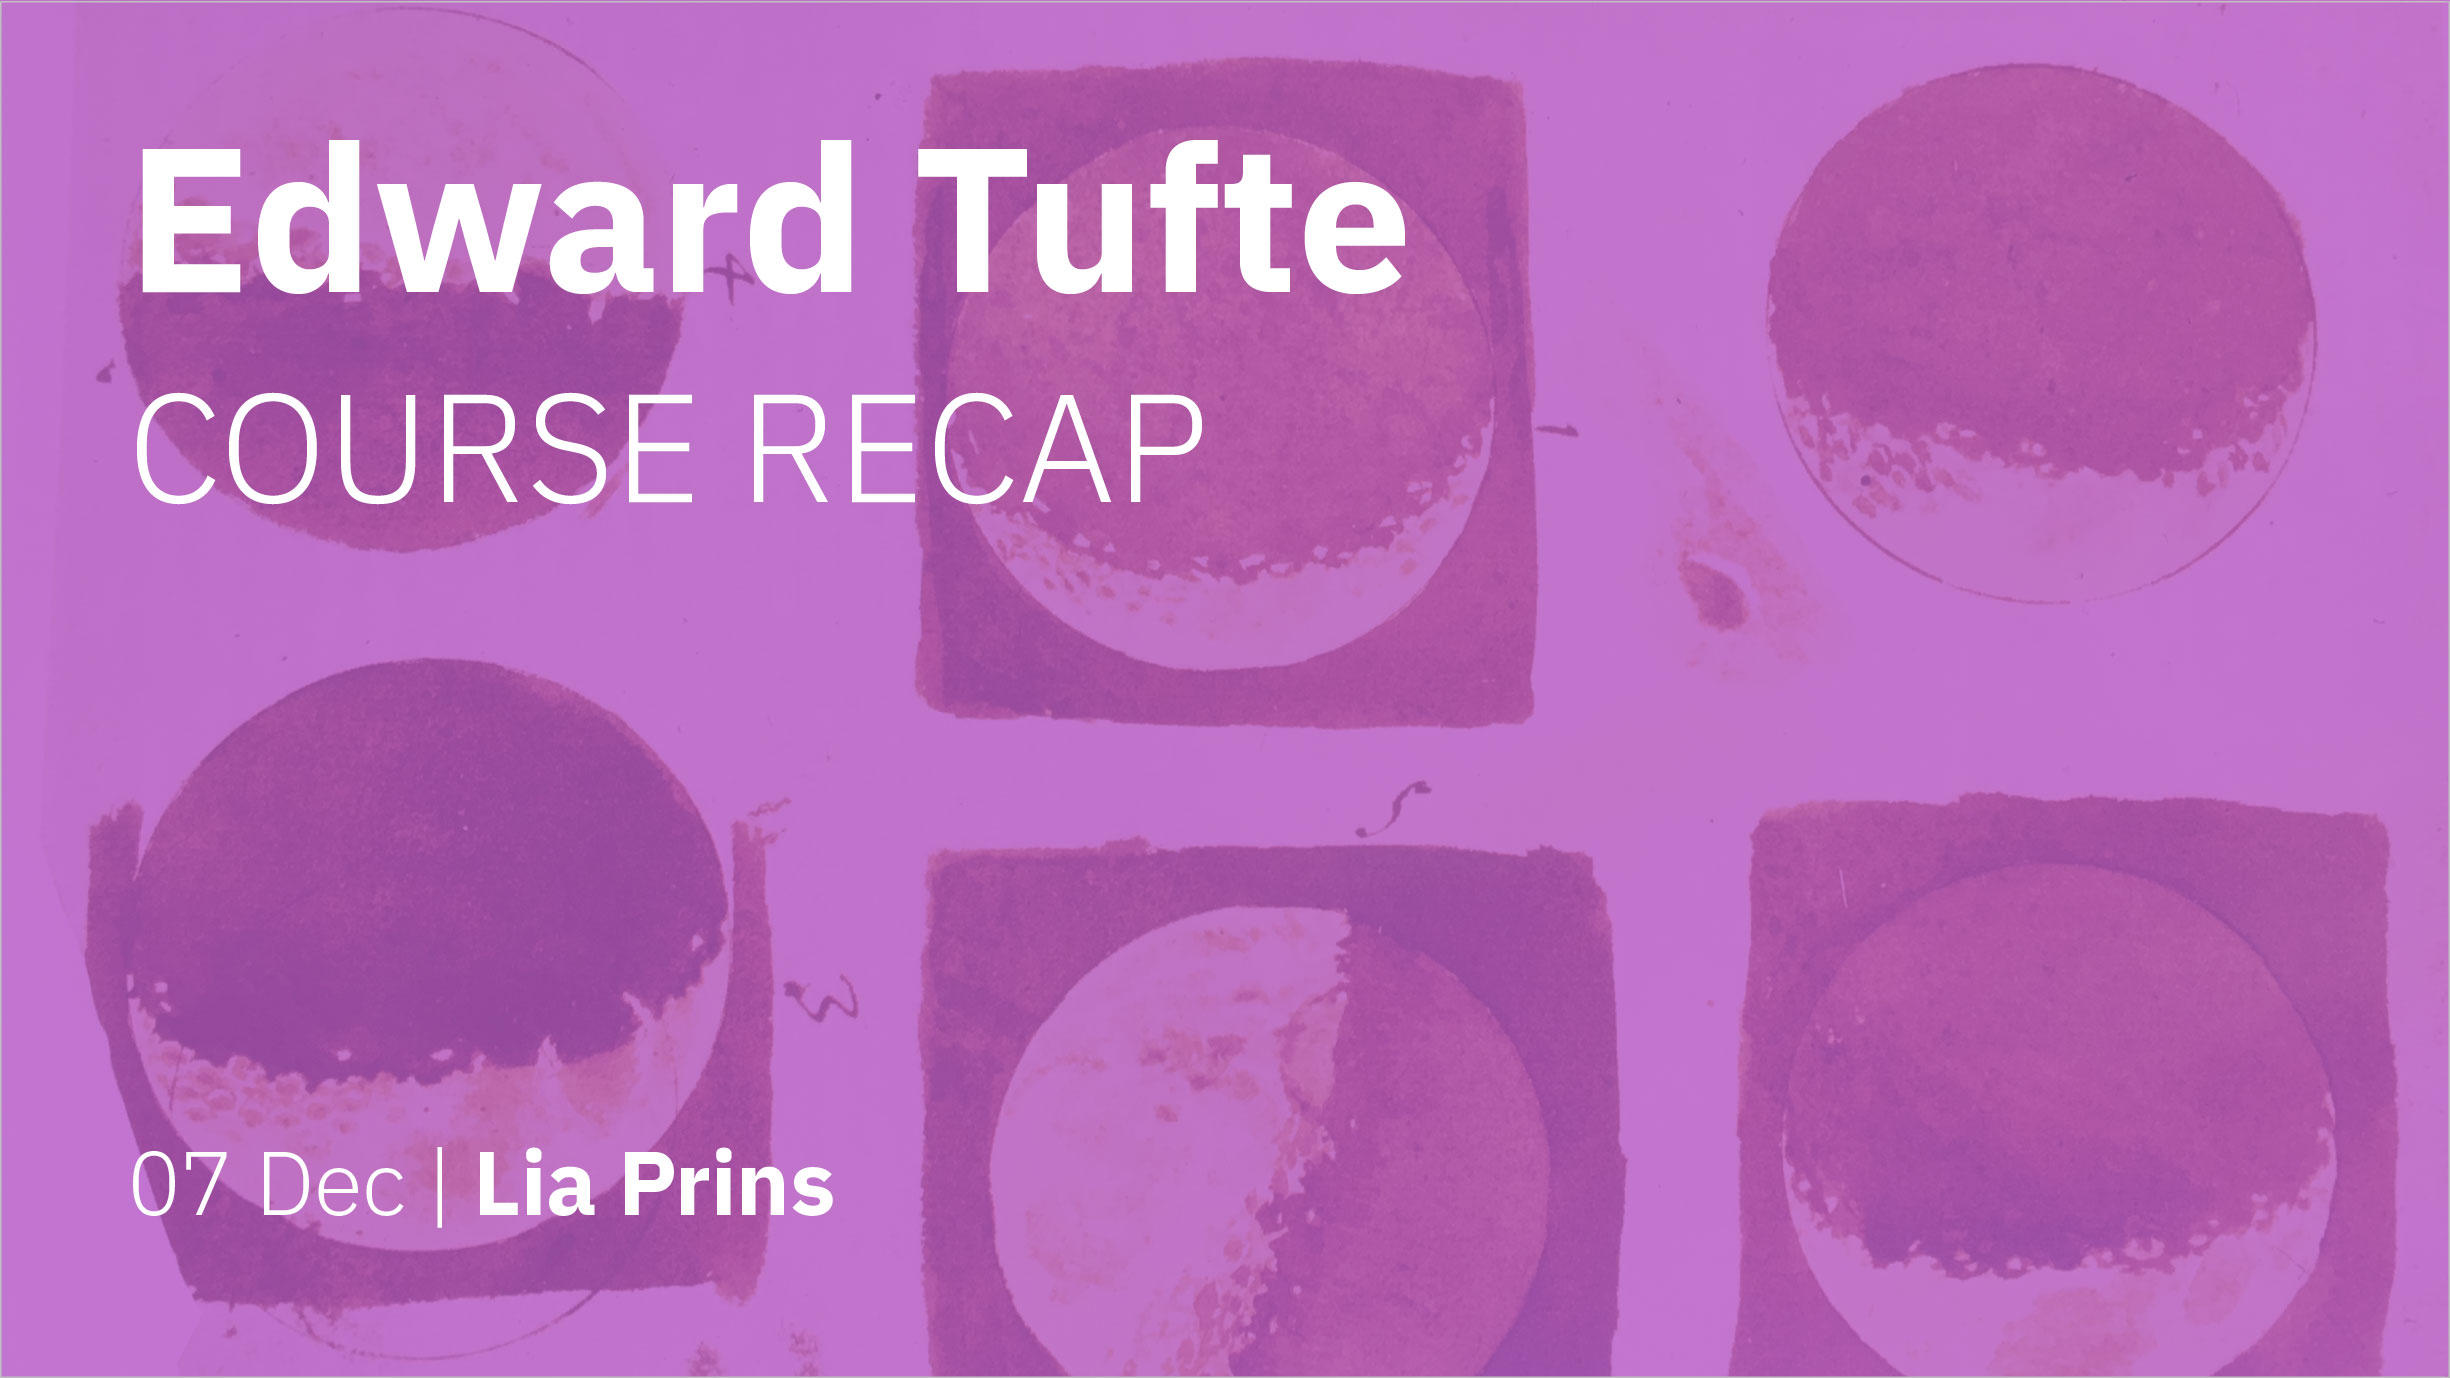 The cover of my recap presentation about Edward Tufte's course.